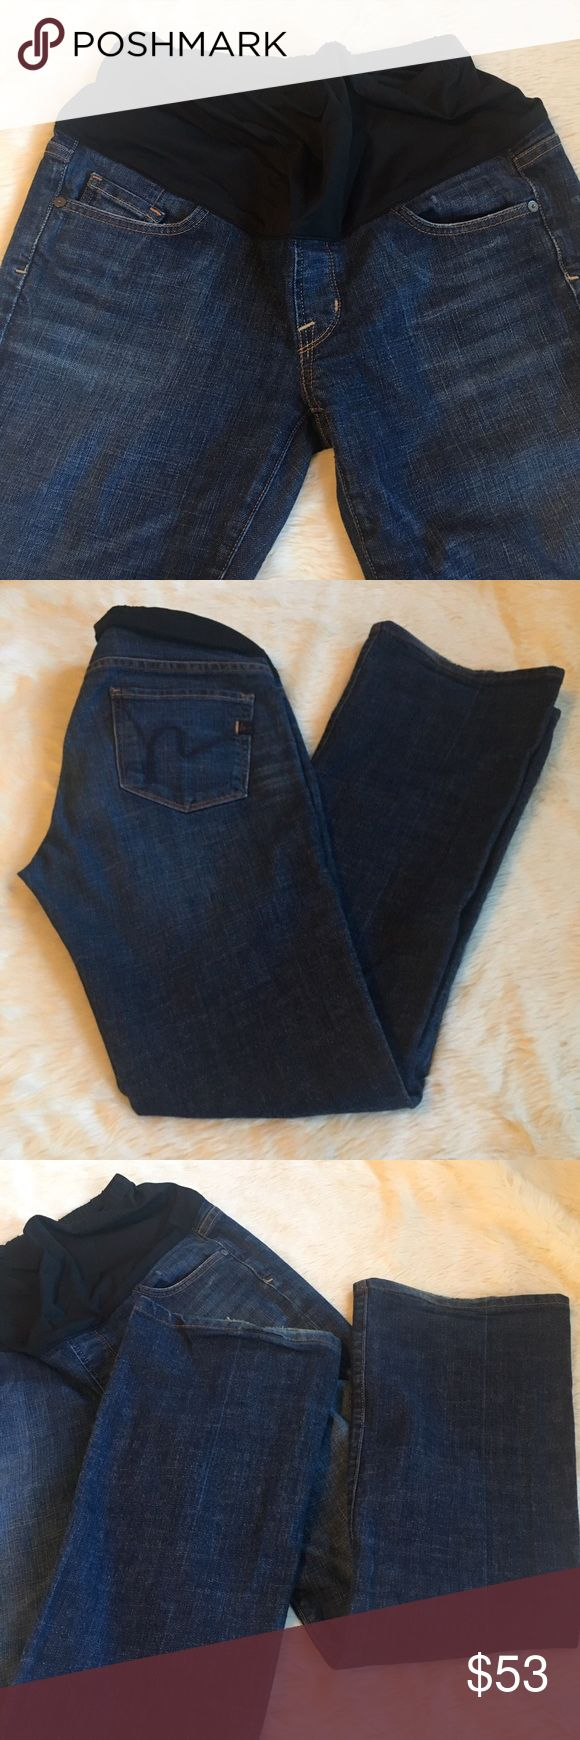 """COH Kelly Bootleg Maternity Belly Panel Jeans One of 2 pairs of Size 29 COH maternity jeans in my closet! This pair is the one that has little to no hem wear and priced accordingly higher. Both can be bundled & offers are welcome. This is the most common and most popular Kelly style.  A classic bootleg jean with the famous indigo embroidered """"h"""" makes almost every bottom look great. The band is made of a stretchy nylon that hits mid-to-over belly. The band can also be worn completely under…"""